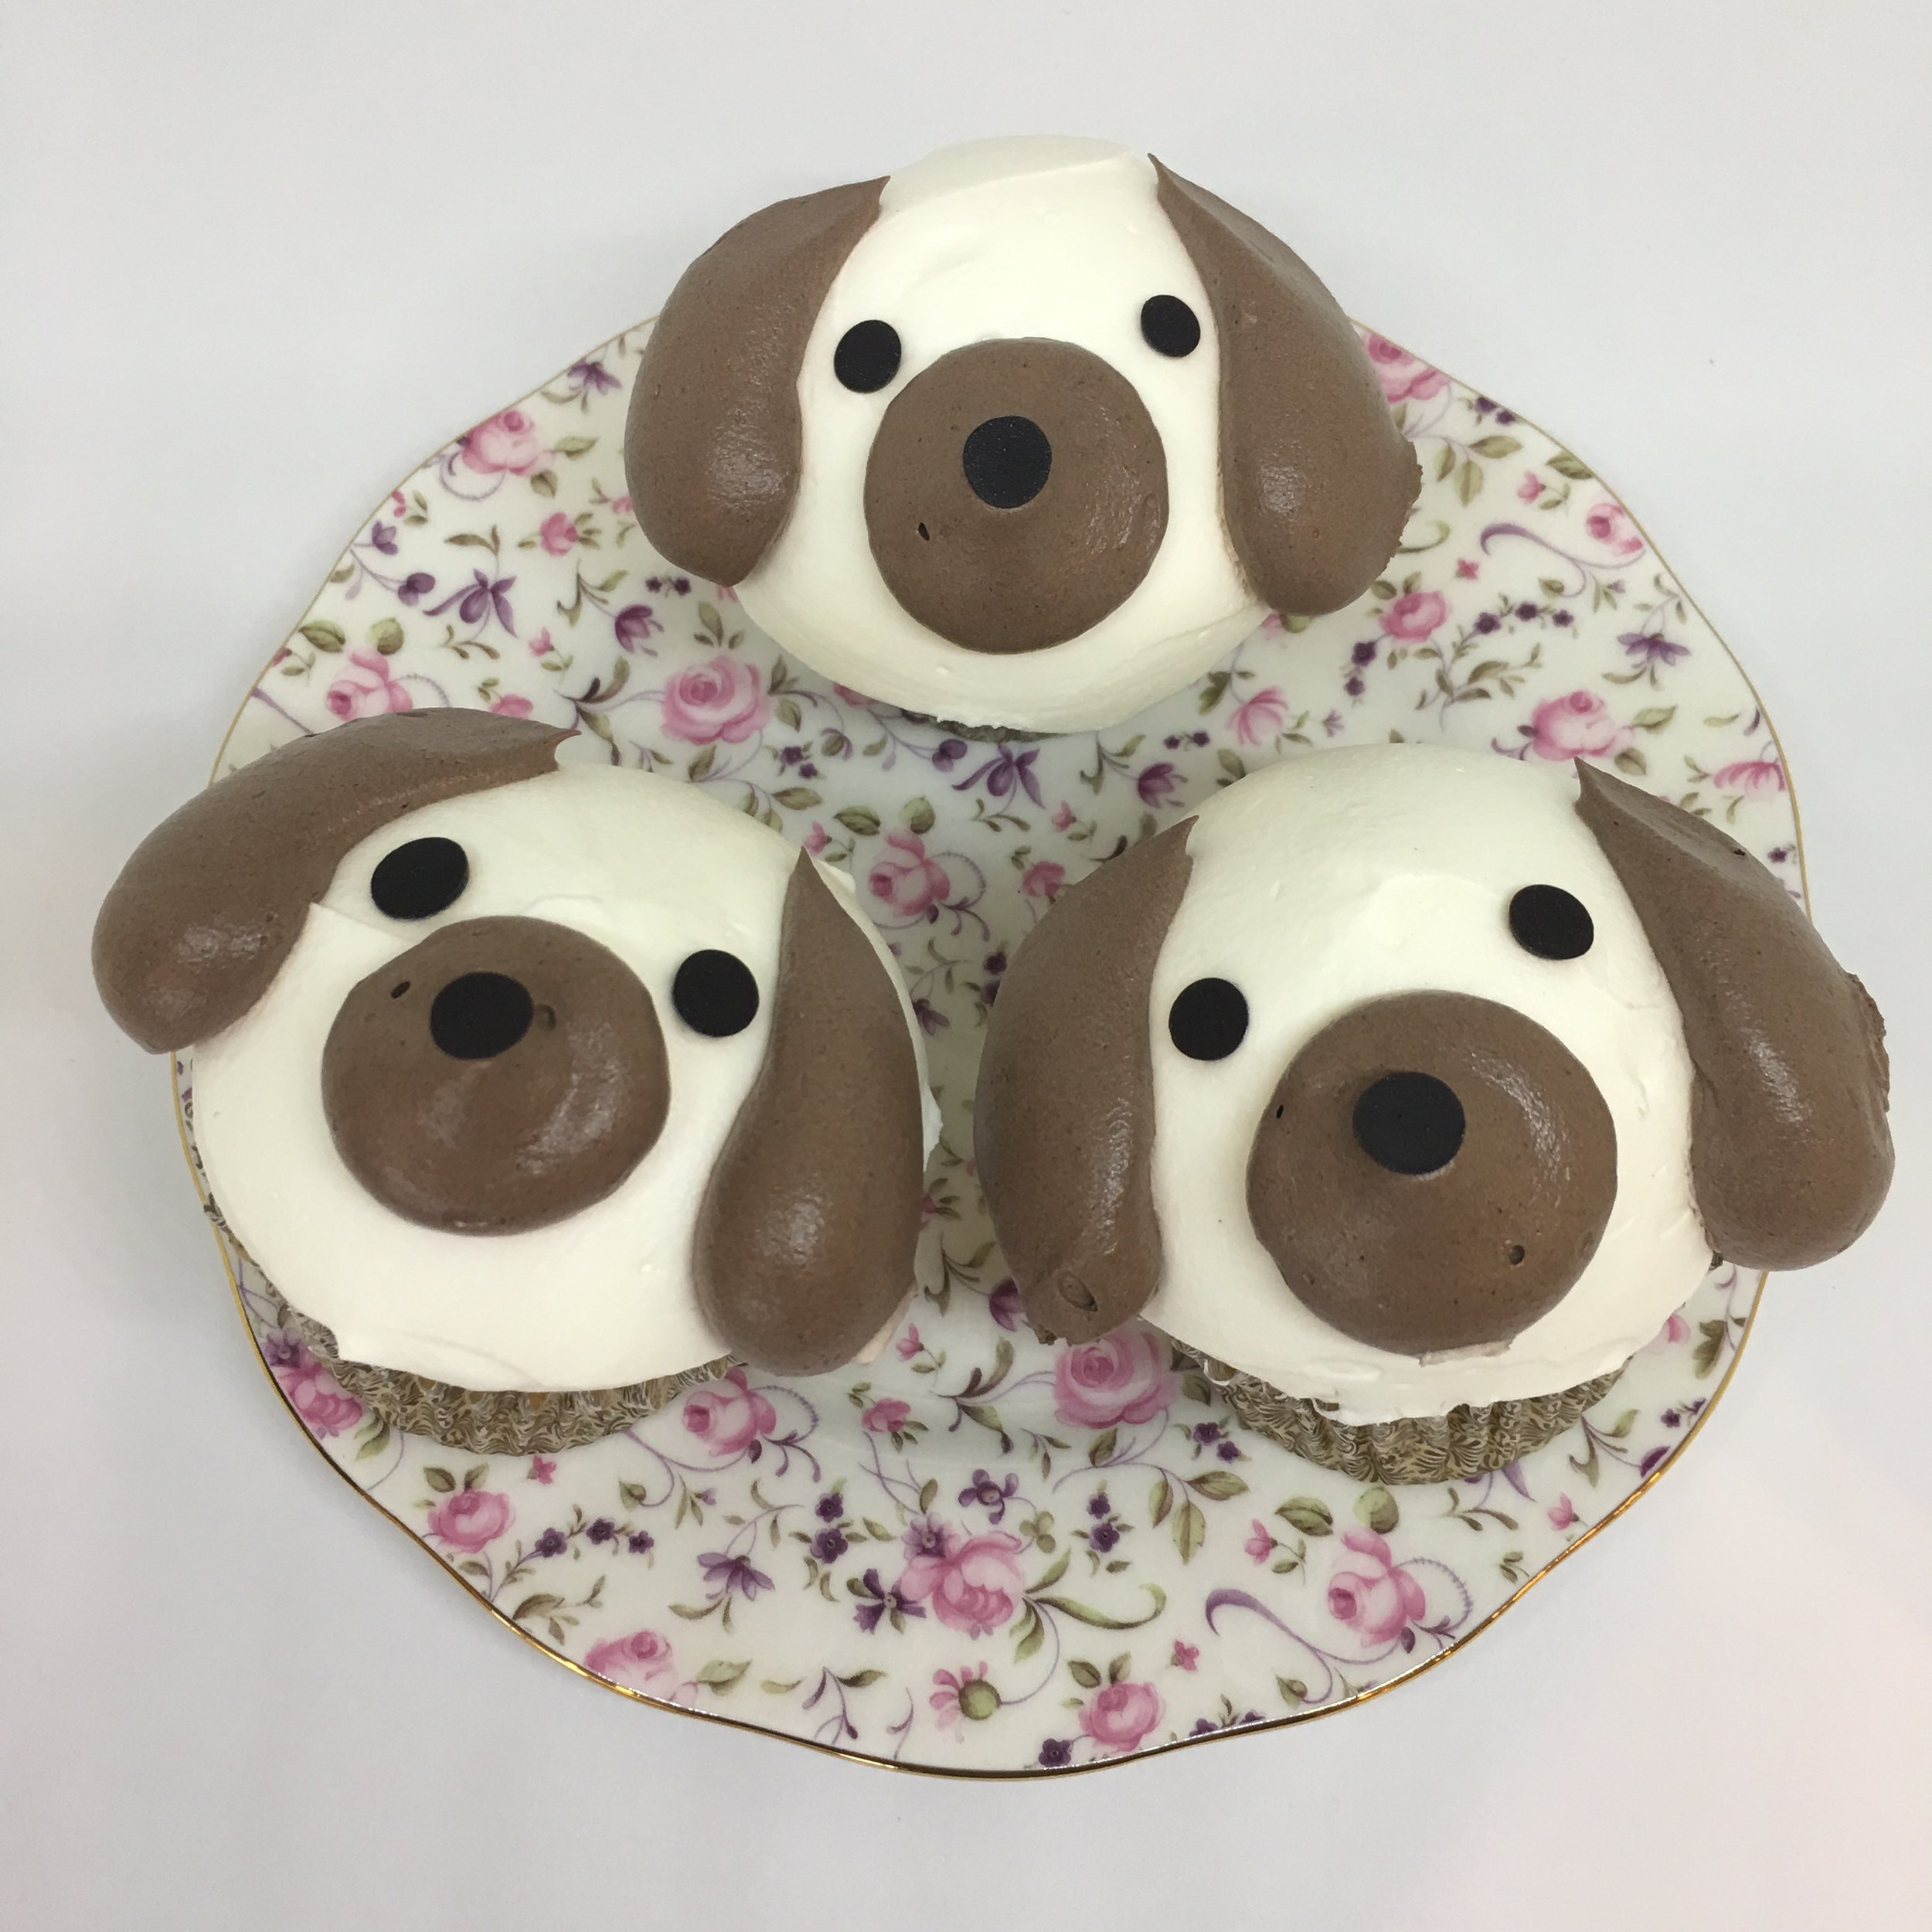 DOGGY CUPCAKE with heavy cream topping  (available at Kam Shopping Center location only)